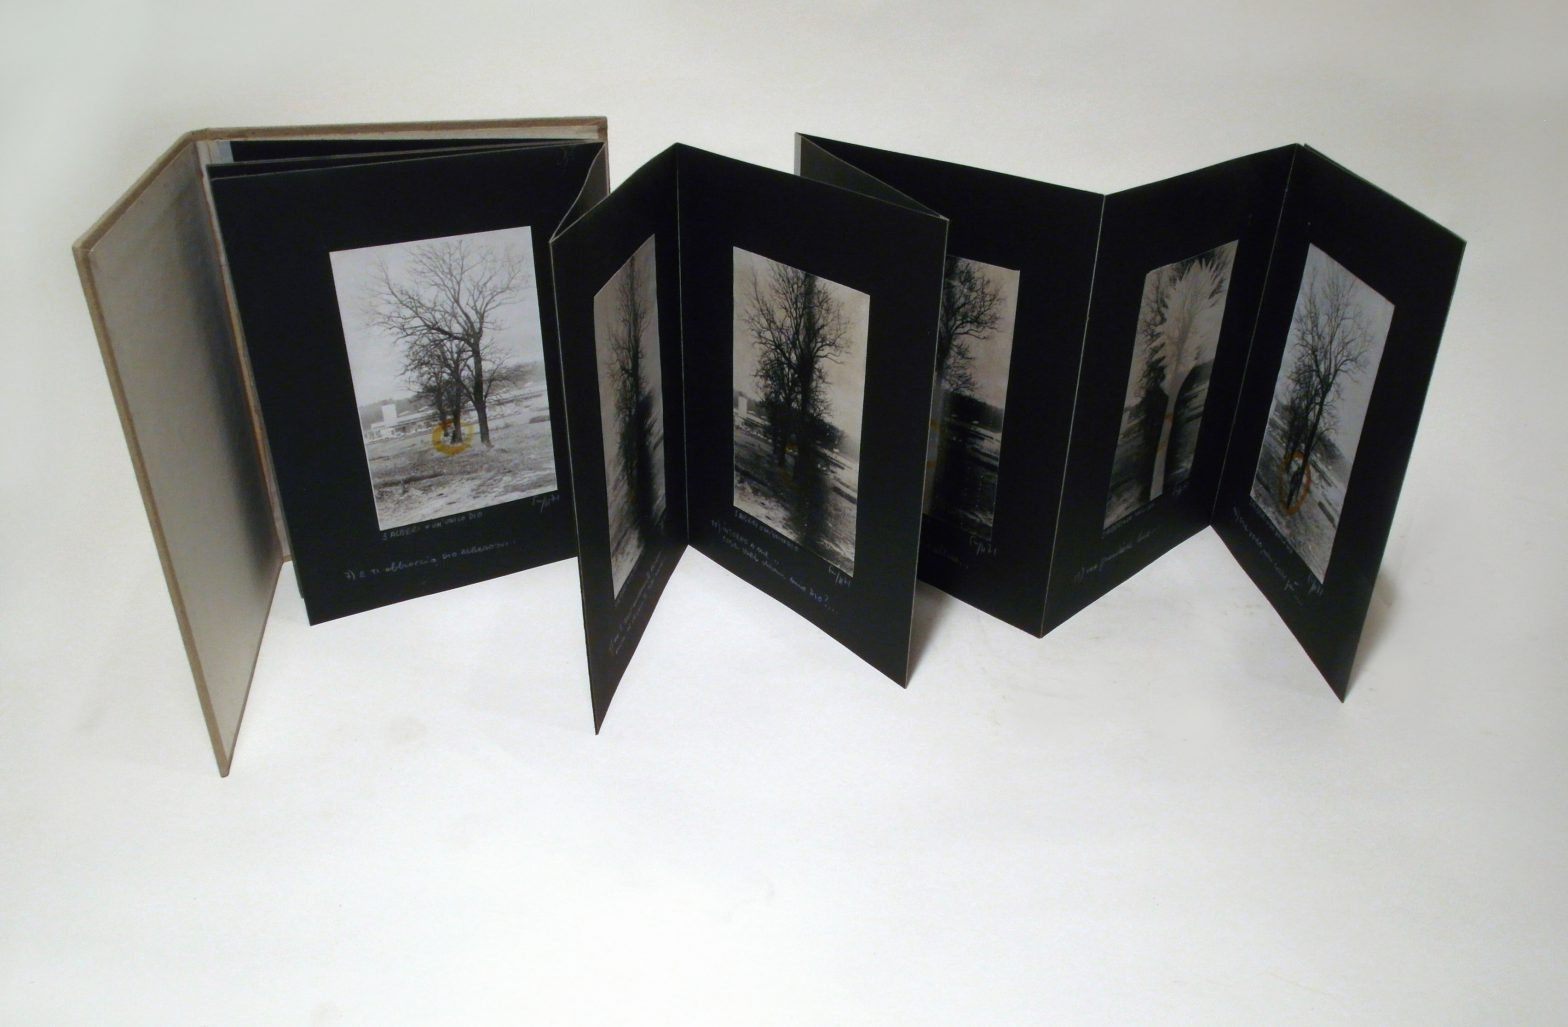 Each pages inside shows a photo of tree. Handwritten notes underneath.